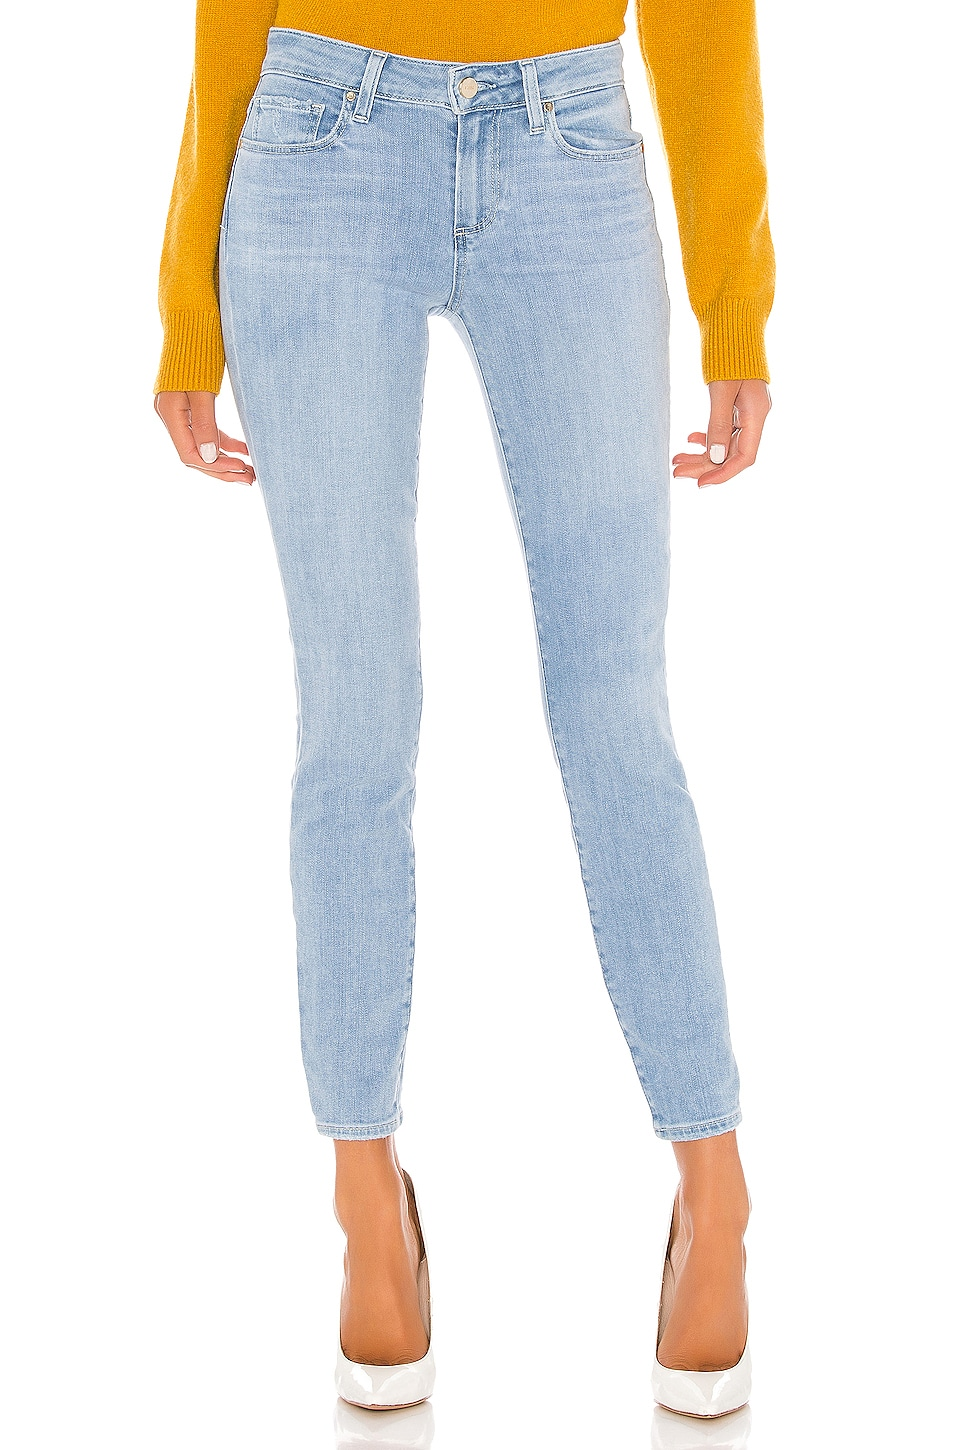 PAIGE Verdugo Ankle in Icicle Distressed Hem